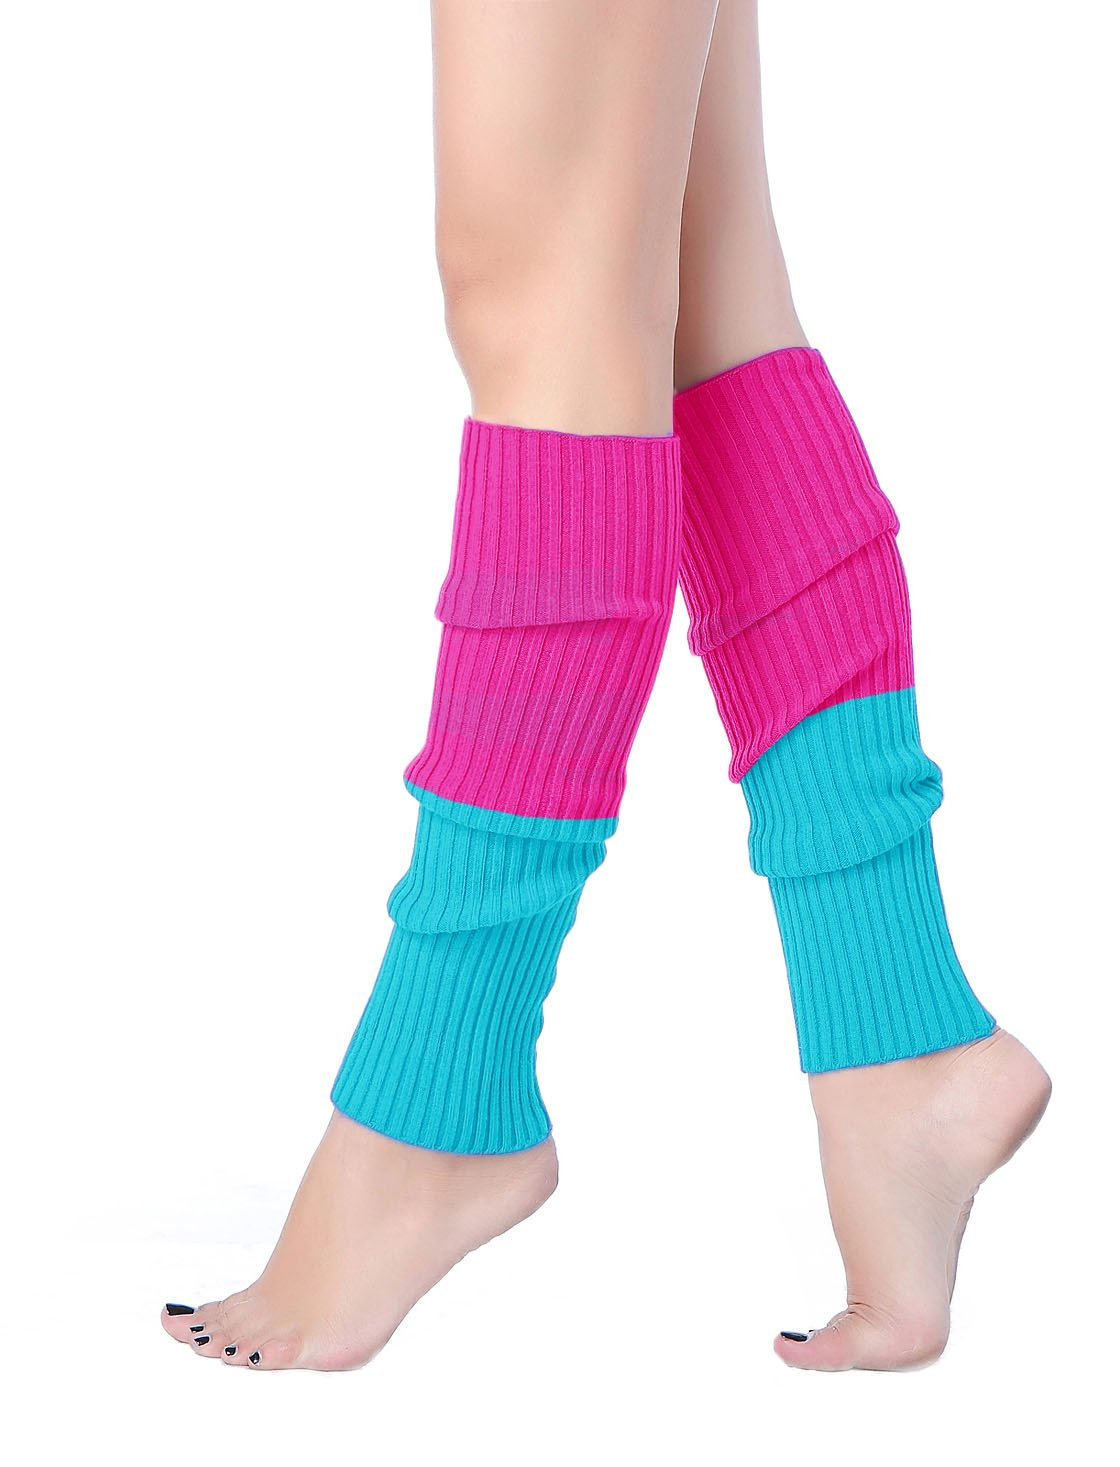 V28 Women Juniors 80s Eighty's Ribbed Leg Warmers for Party Sports